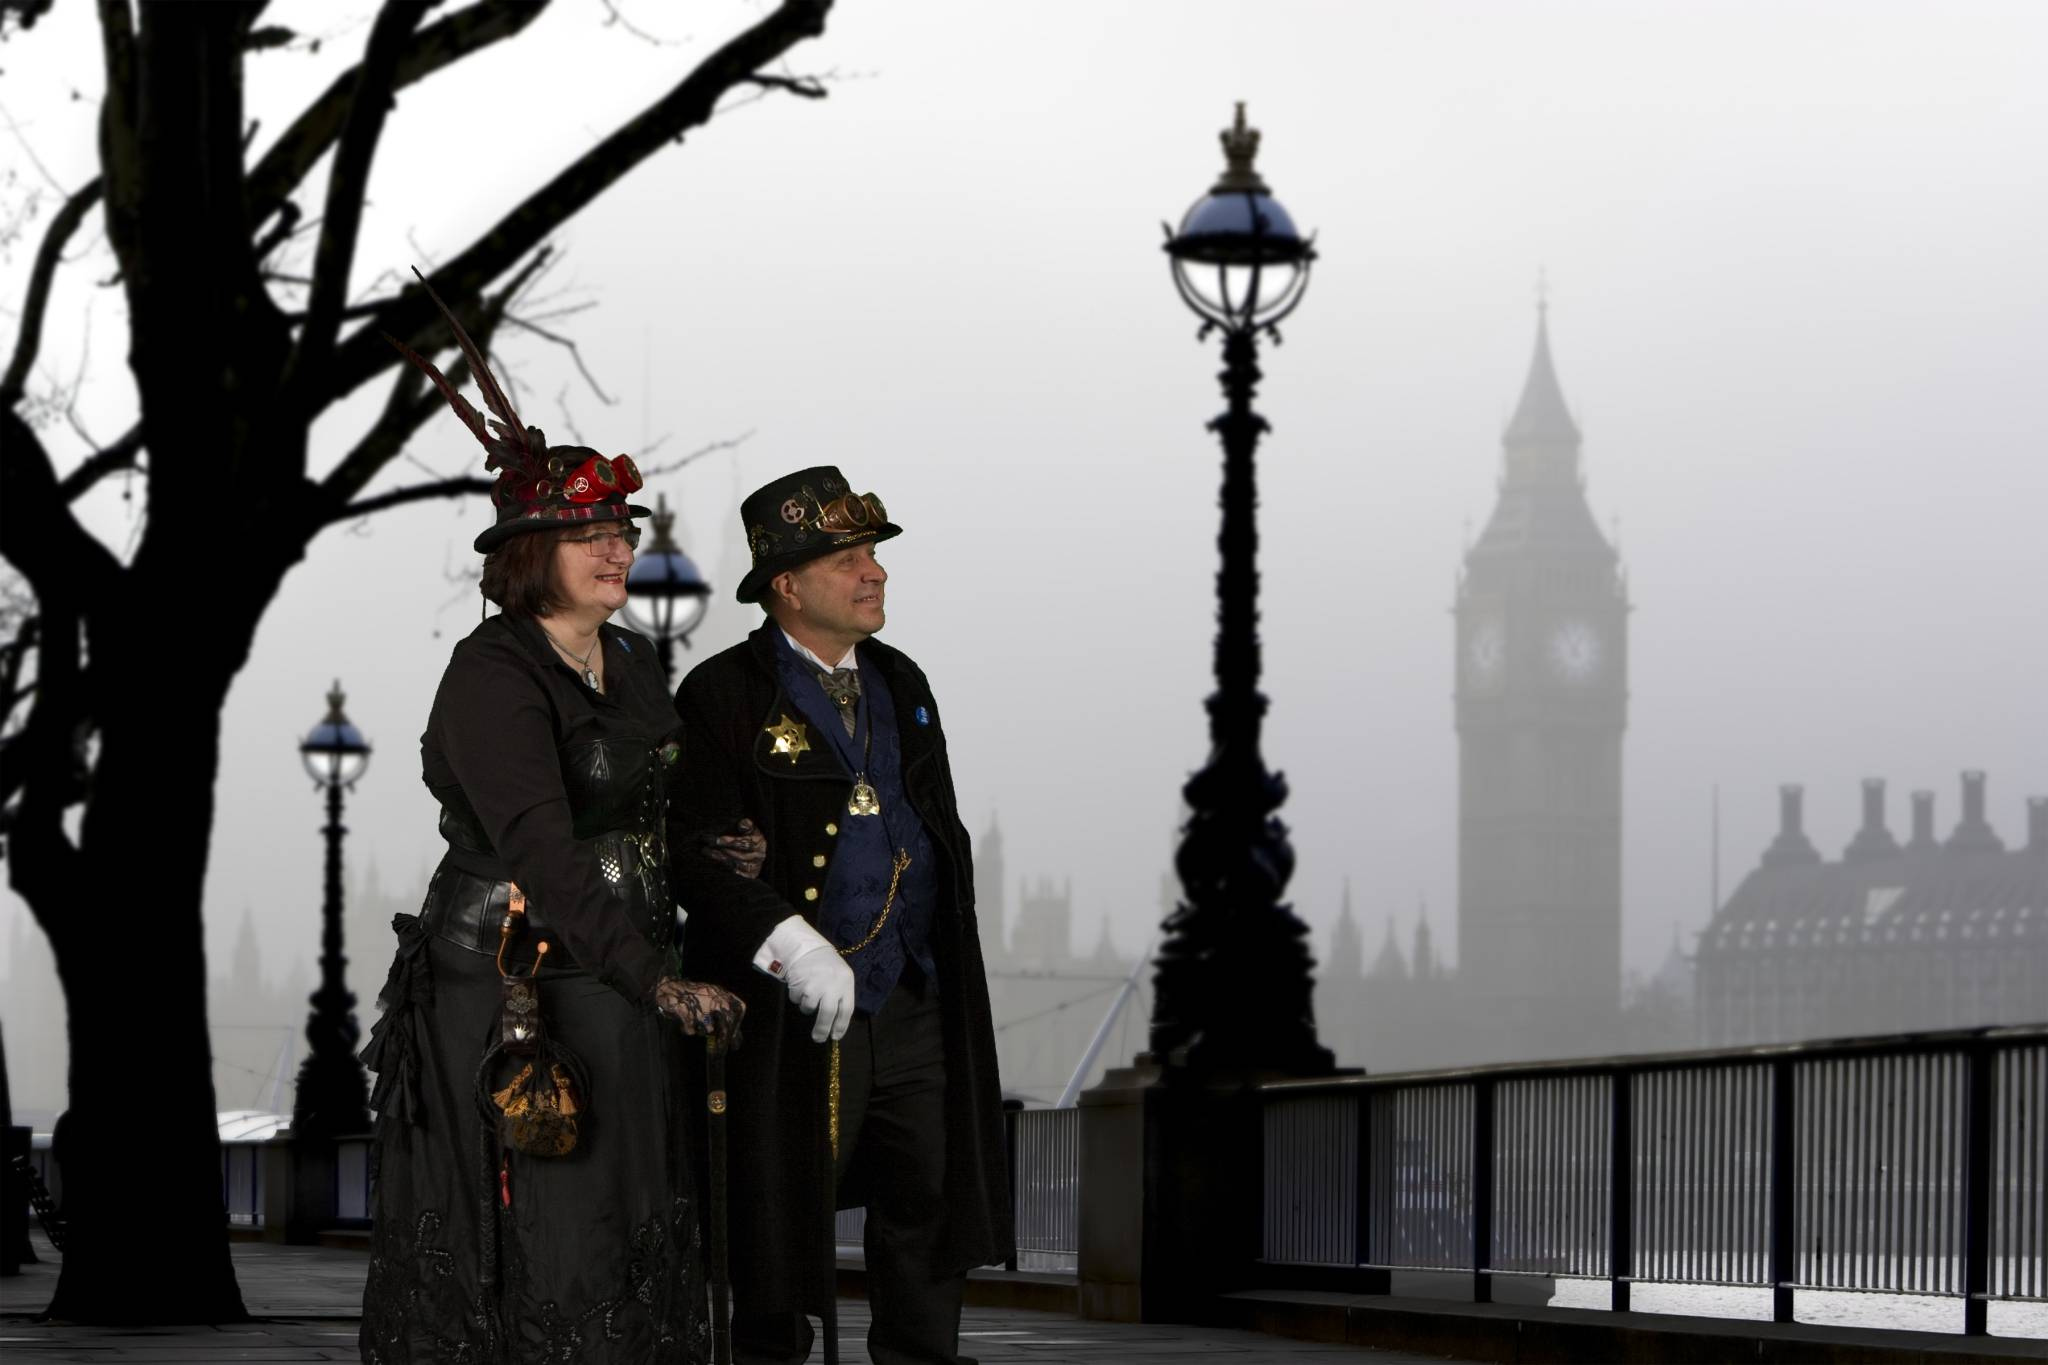 Steampunk In England